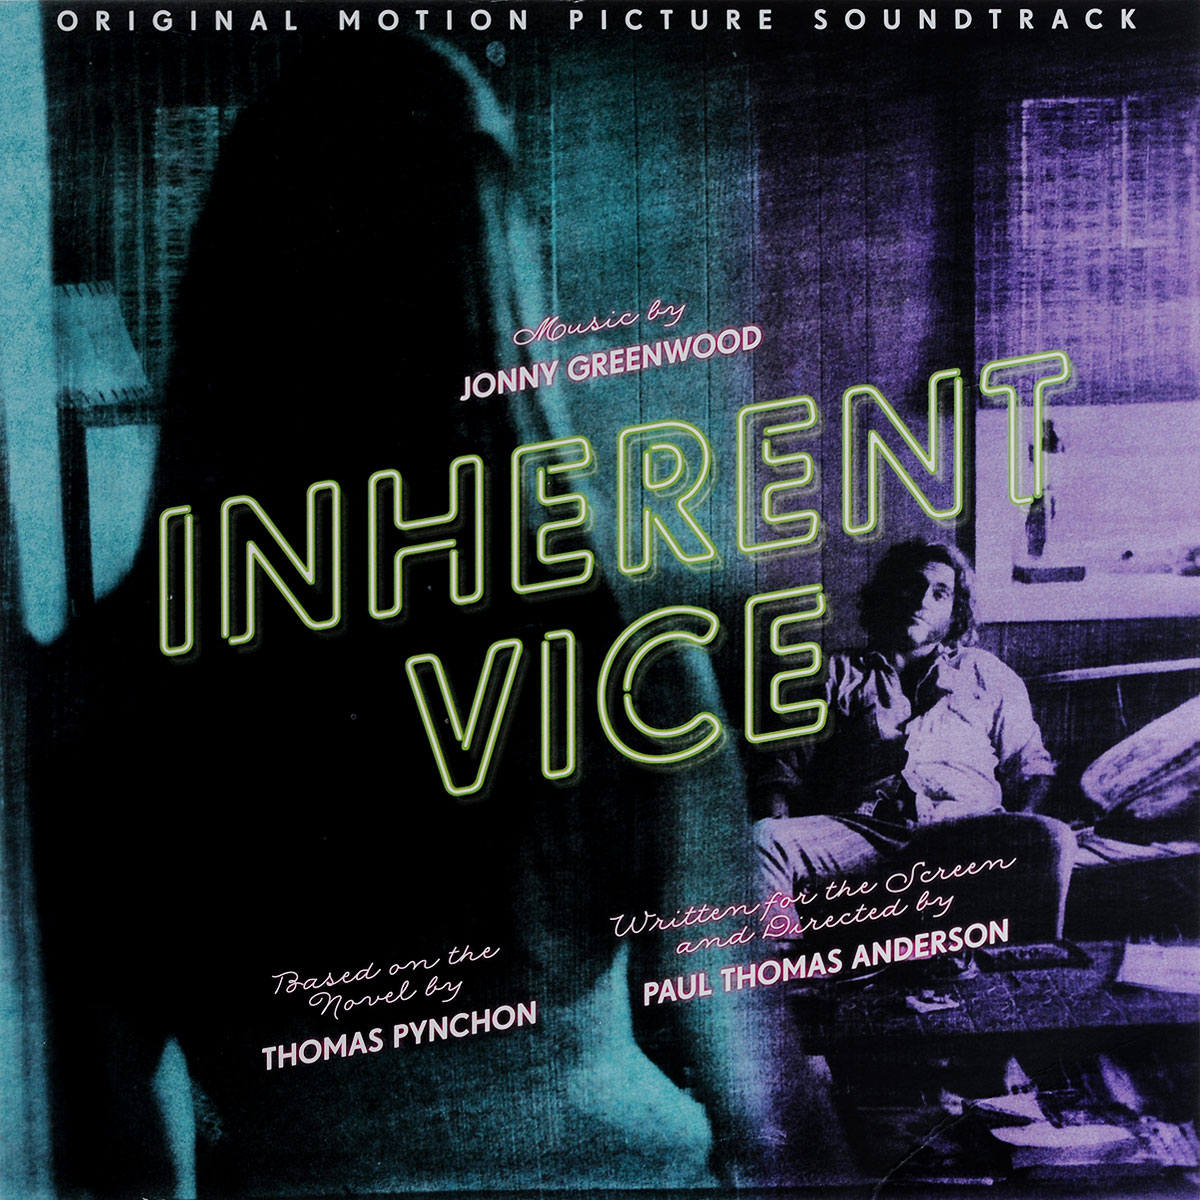 Jonny Greenwood. Inherent Vice. Original Motion Picture Soundtrack (2 LP) jonny greenwood jonny greenwood the master lp cd